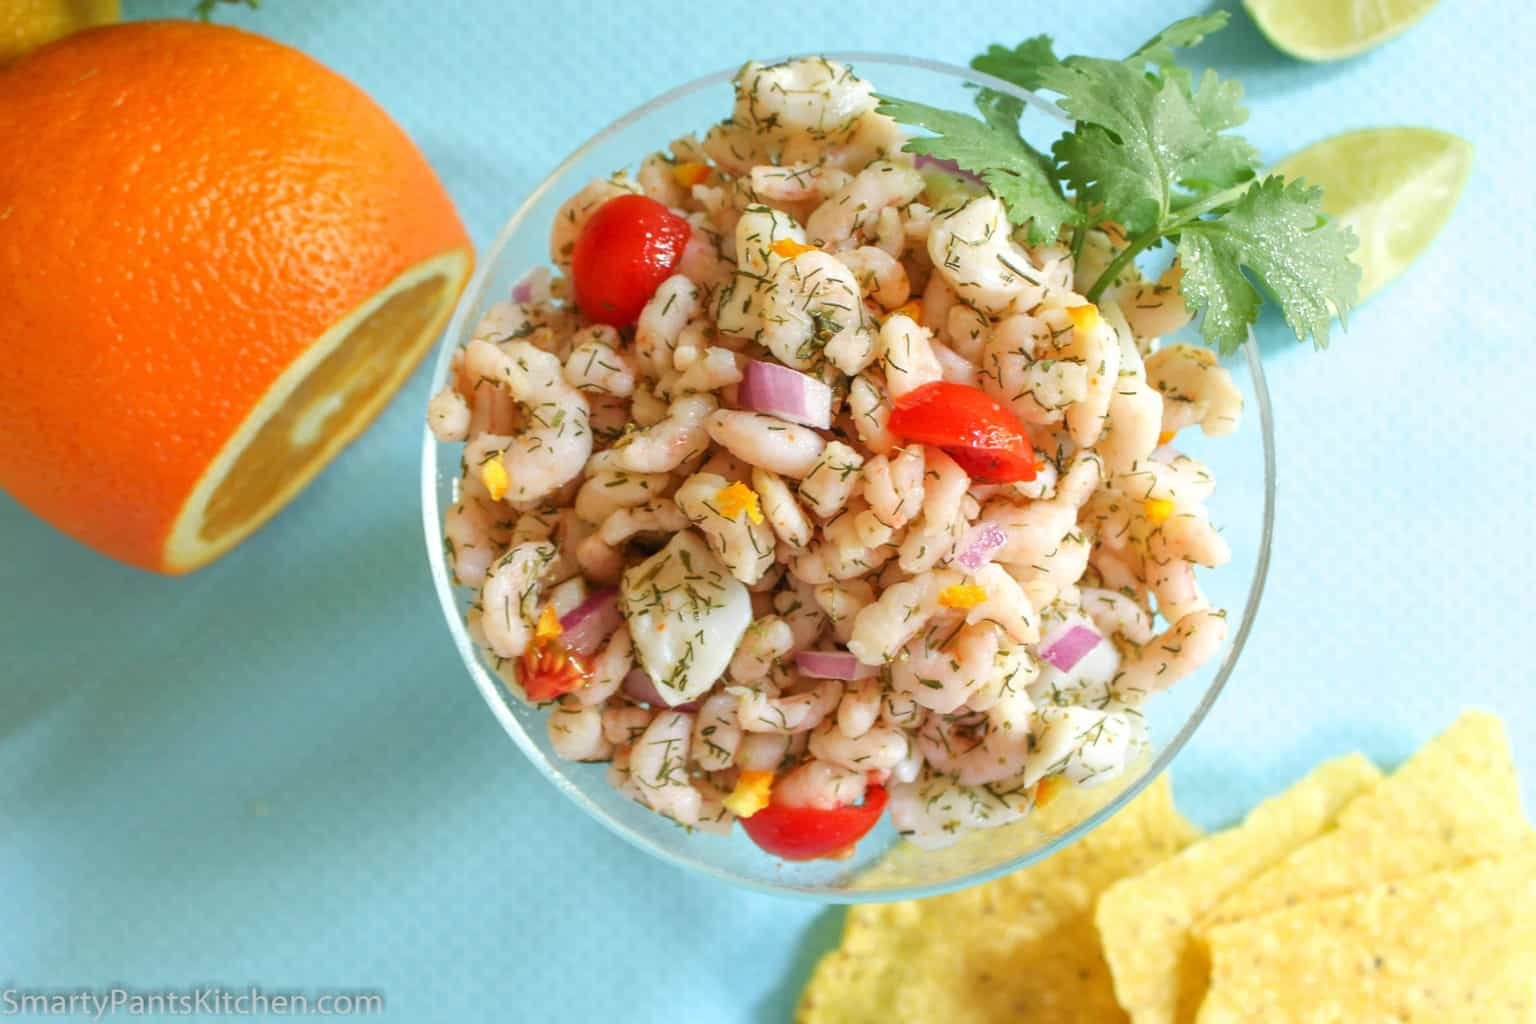 orange ceviche in glass bowl garnished with dill and cherry tomatoes